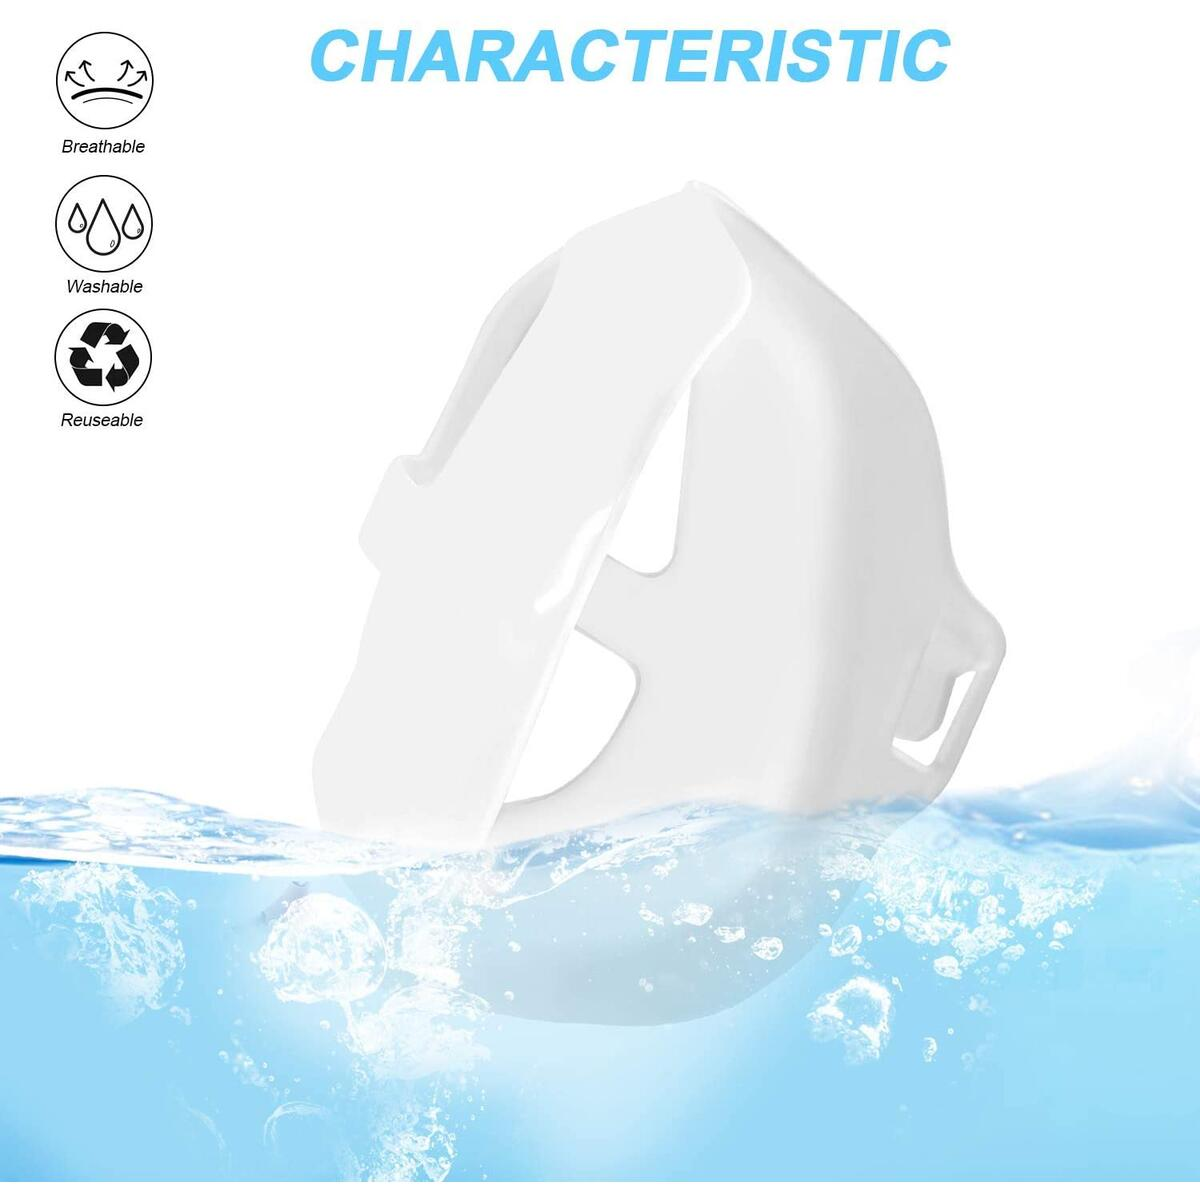 Silicone 3D Mask Bracket Mask Wearing Mask Inner Support Frame DIY Face Accessories Reusable Washable Translucent 5 PCS (White)